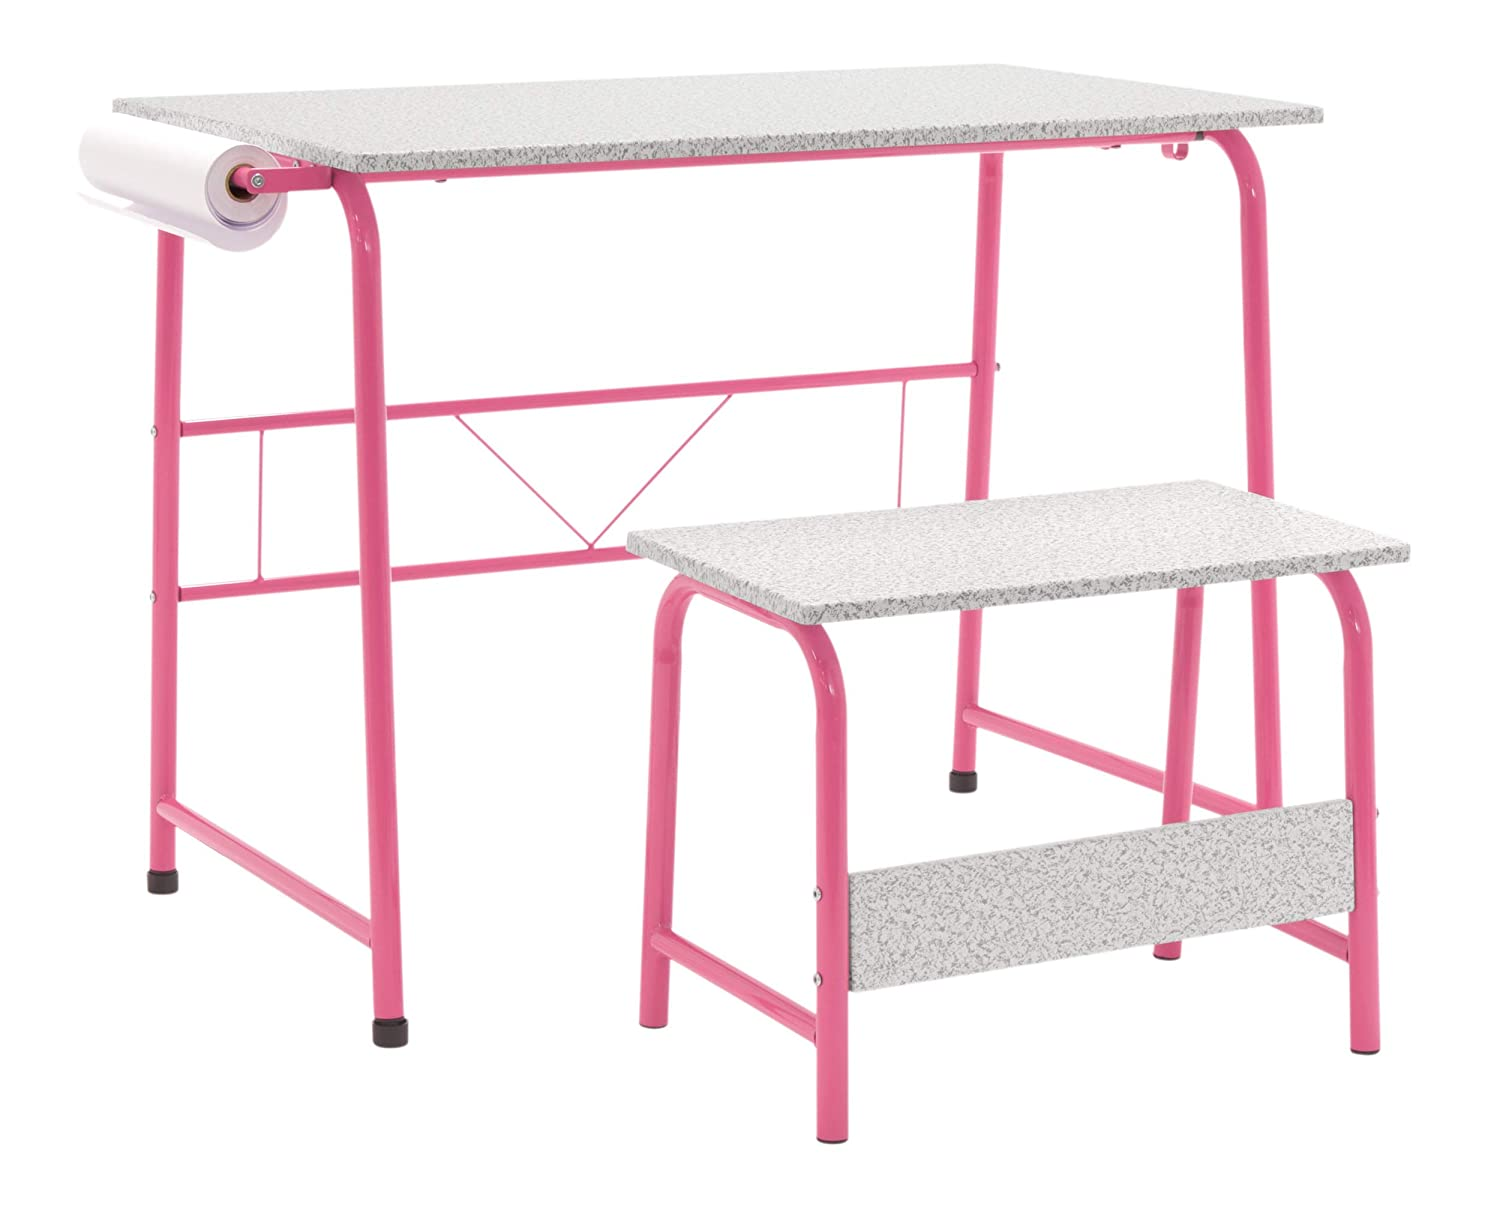 Magnificent Sd Studio Designs Project Center 55125 Craft Table Play Desk With Bench Pink Gray Gmtry Best Dining Table And Chair Ideas Images Gmtryco